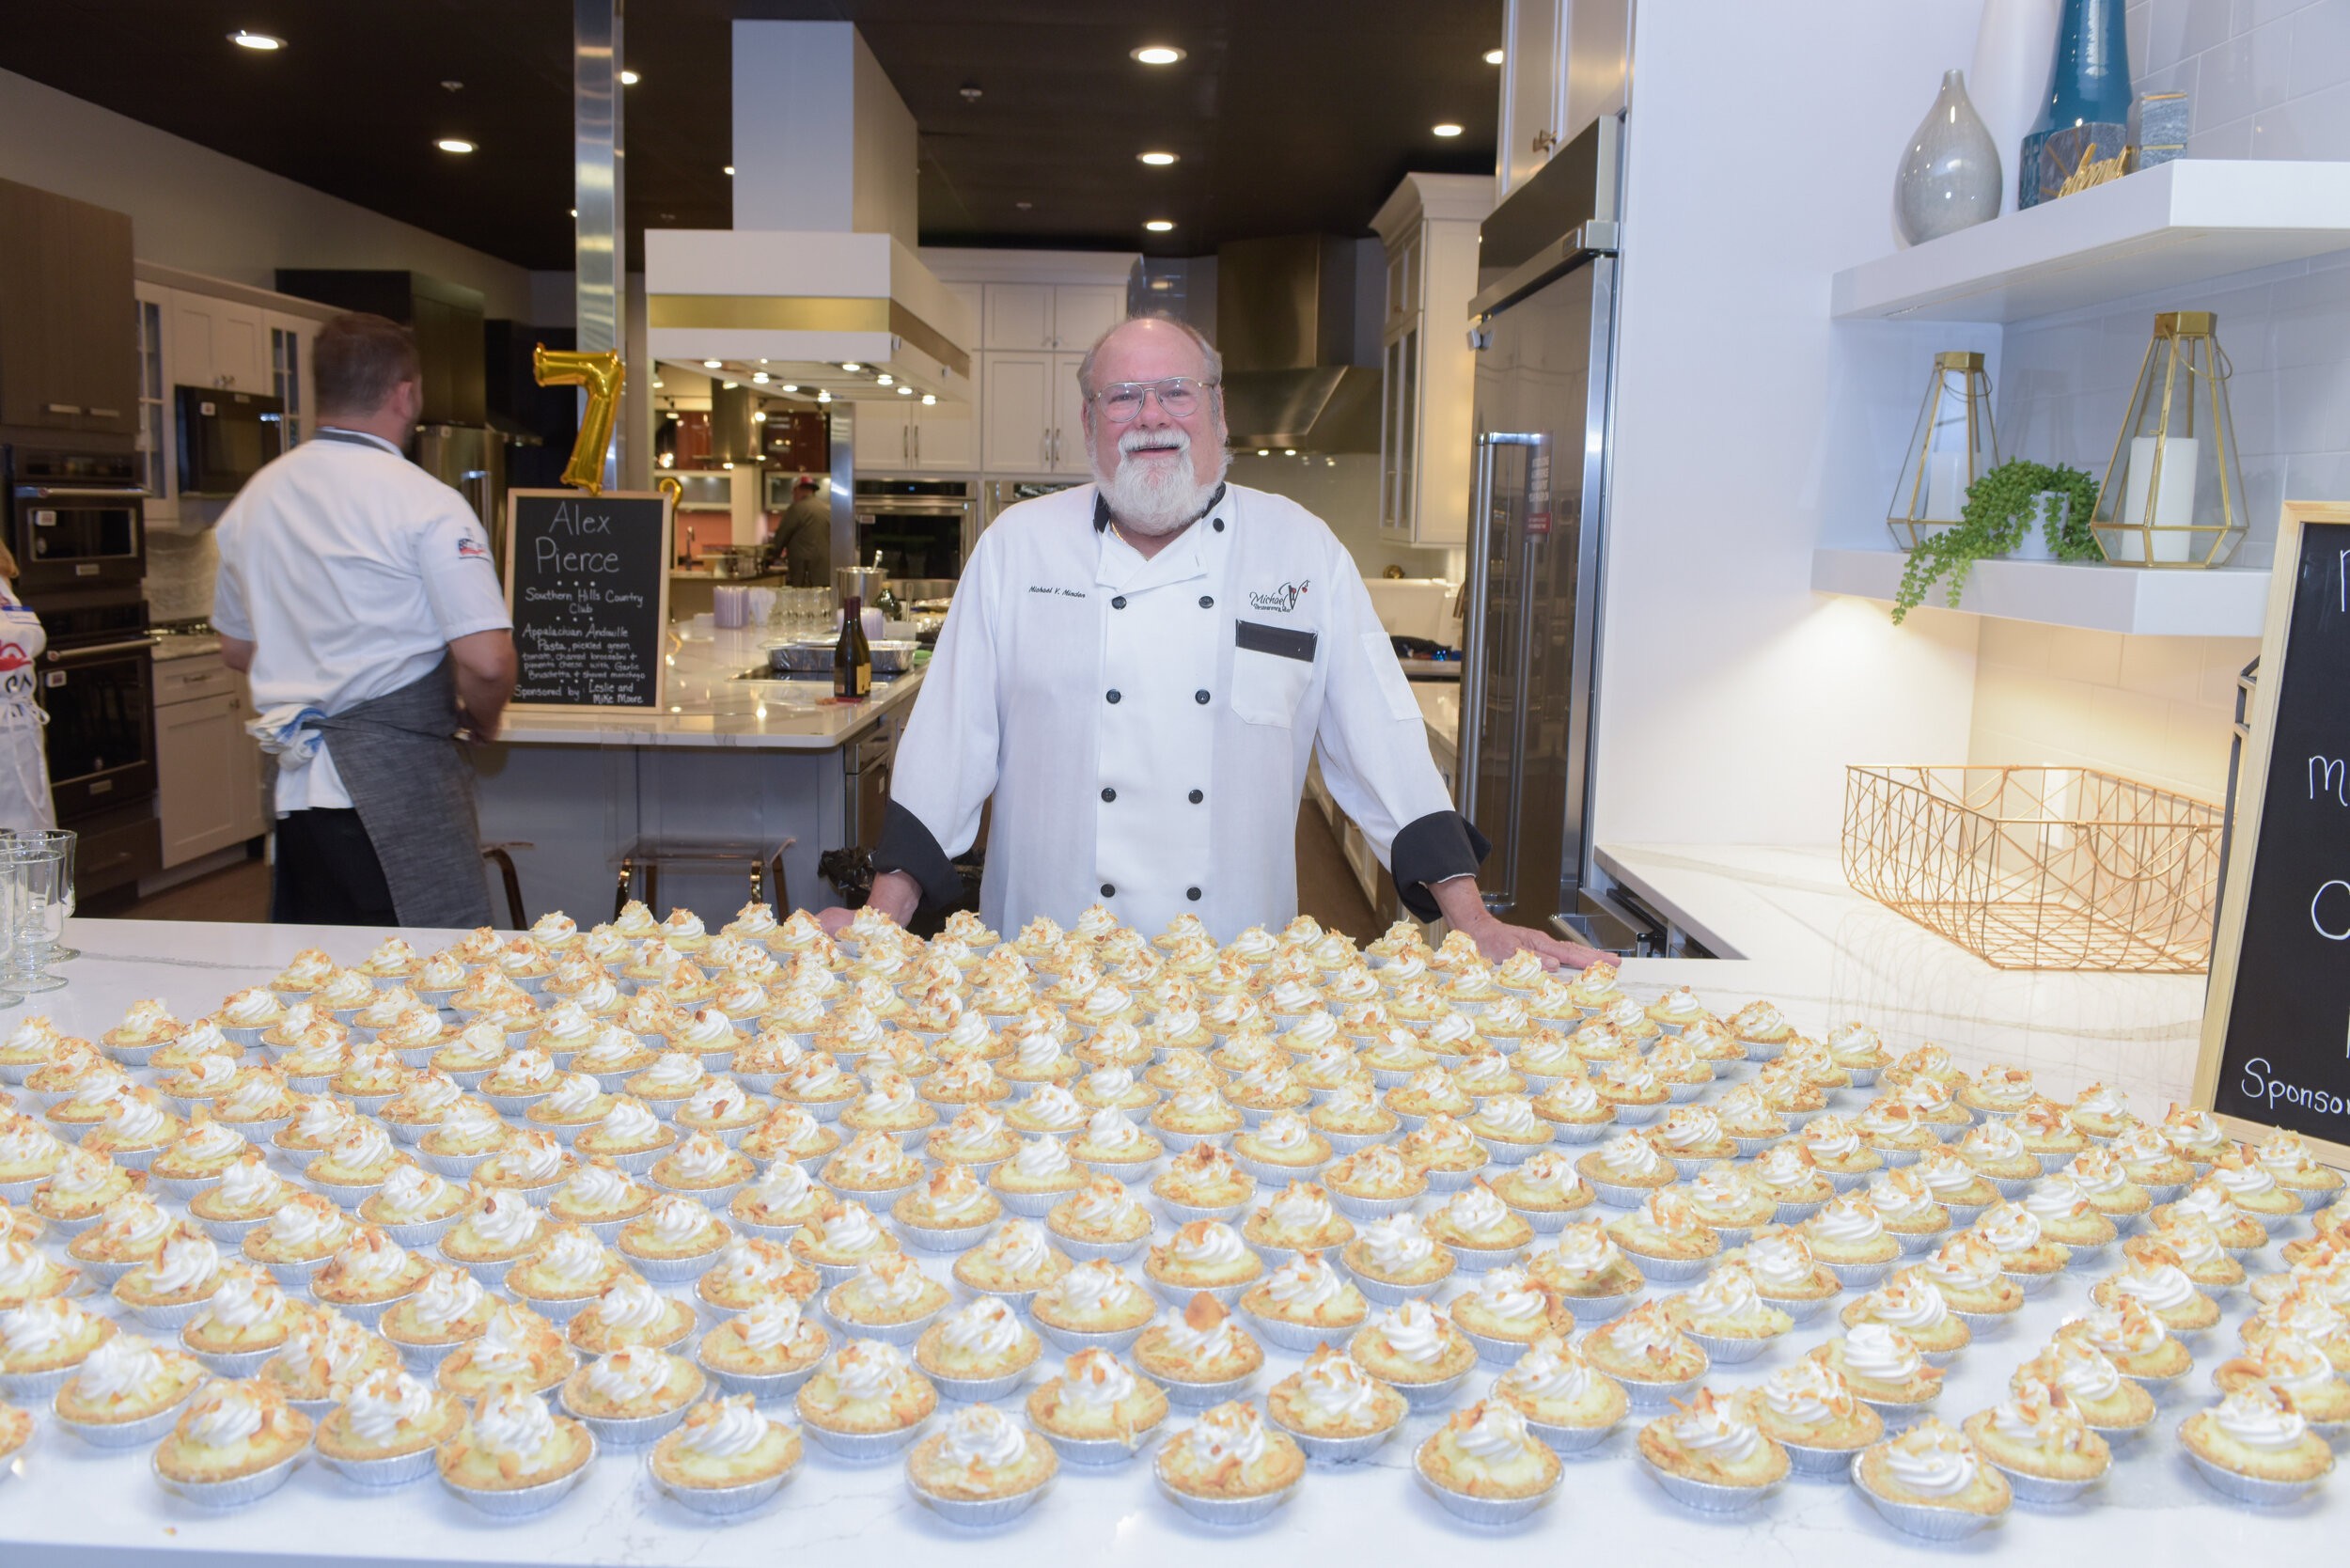 Chef Michael Minden - Owner and Executive Chef at Michael V's Restaurant and Bar, Chef Michael is bringing his famous coconut cream pies to Cooking for a Cause once again.